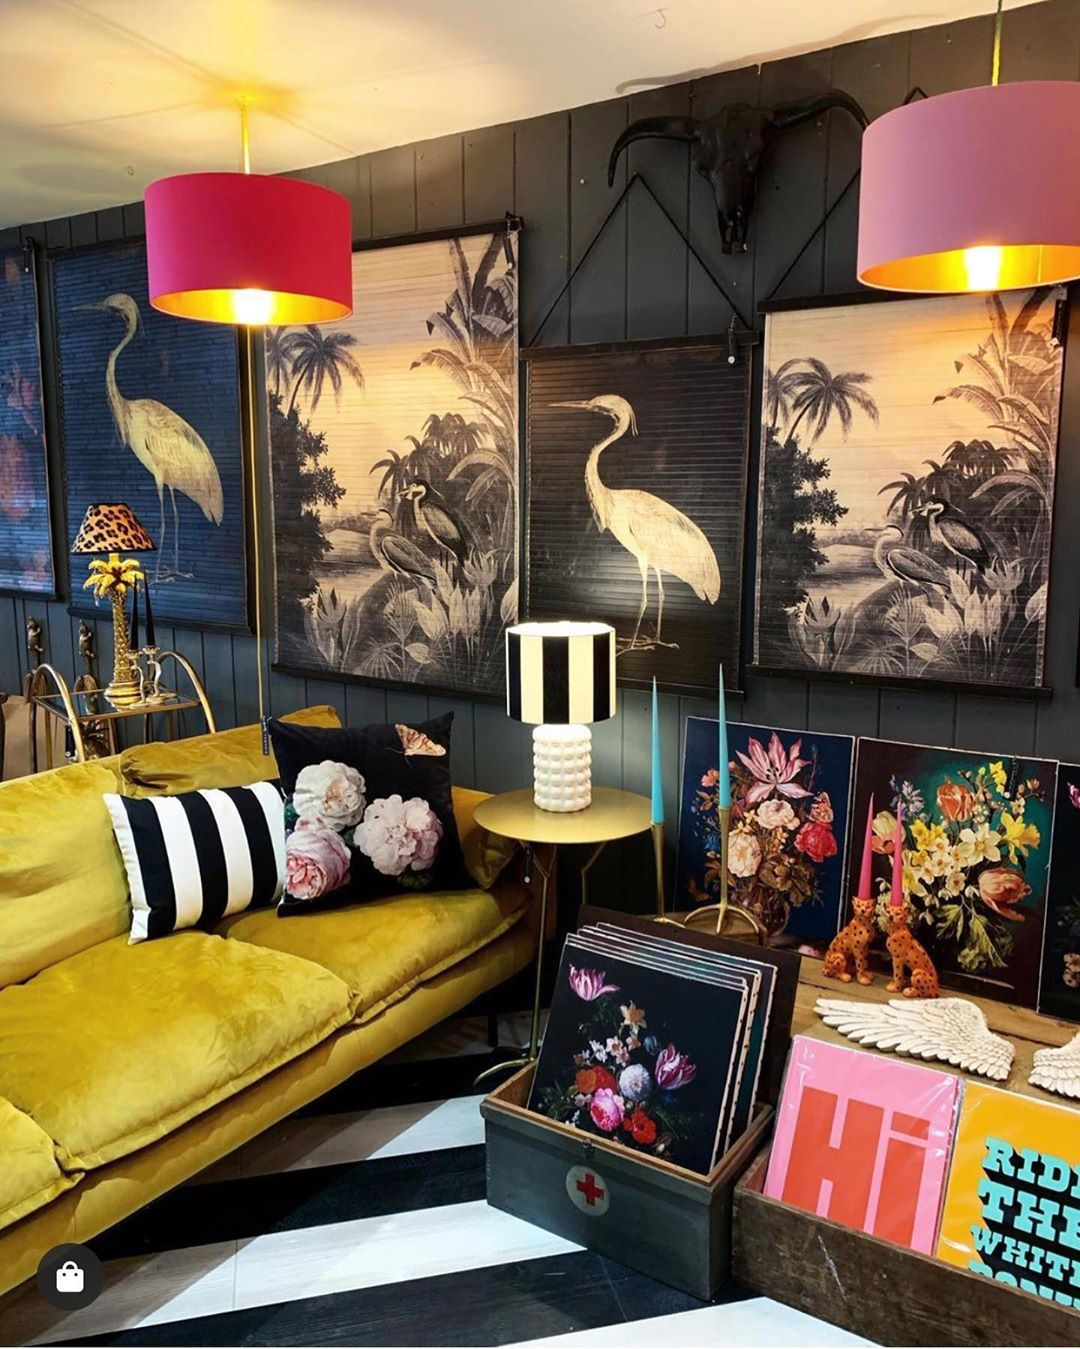 Pin By Renske Priem On Dark Interiors Colourful Living Room Apartment Decor Quirky Home Decor Living room ideas quirky